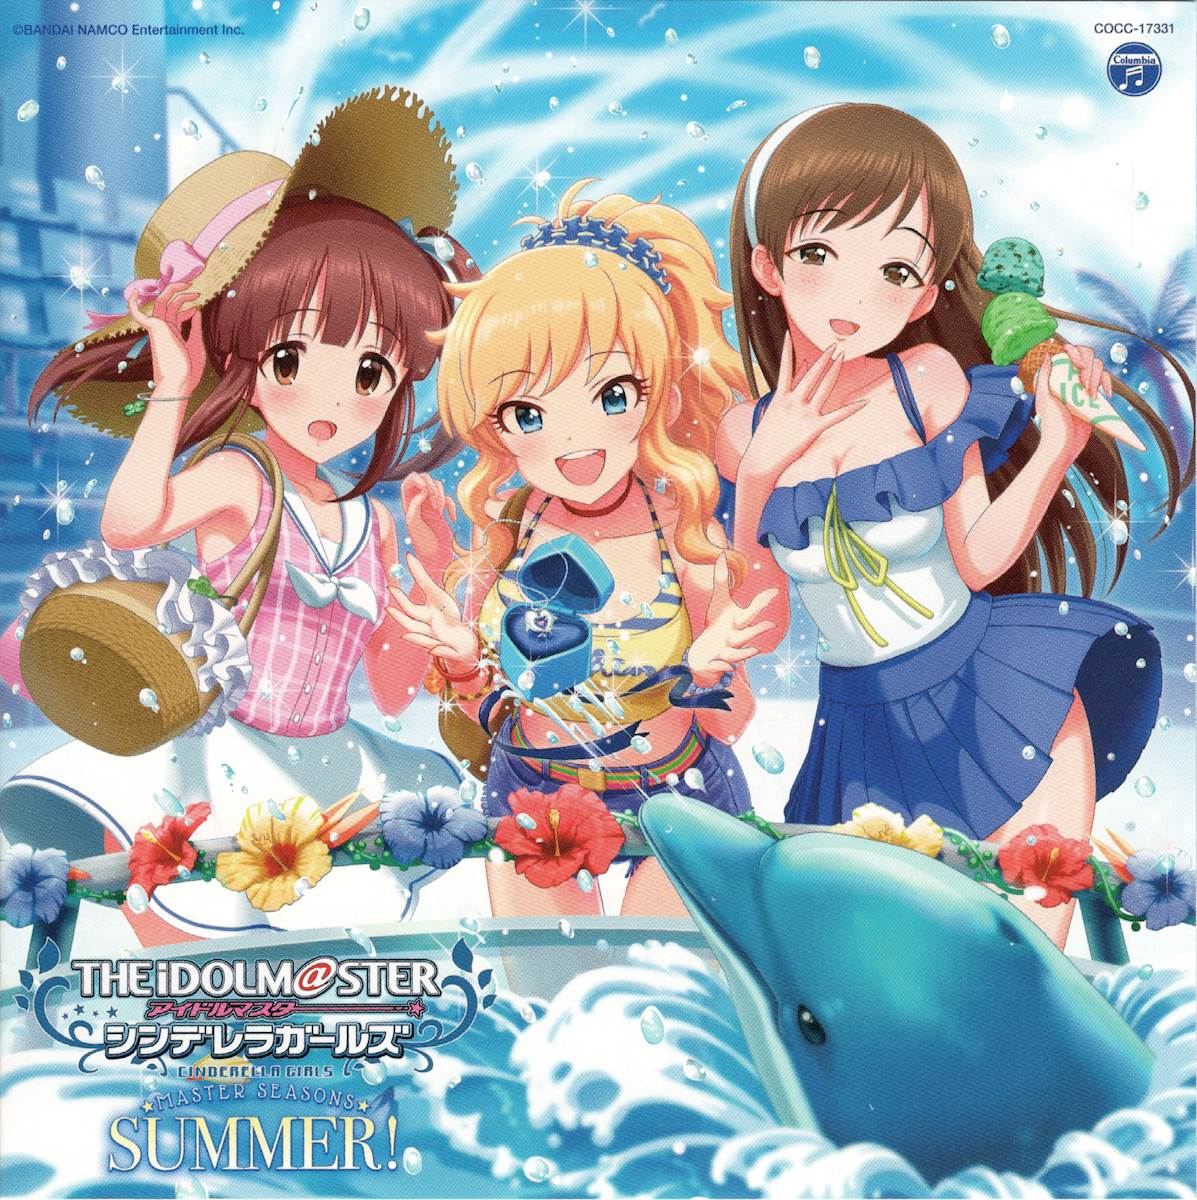 [自购][170809] THE IDOLM@STER CINDERELLA GIRLS MASTER SEASONS SUMMER!(320k+FLAC)